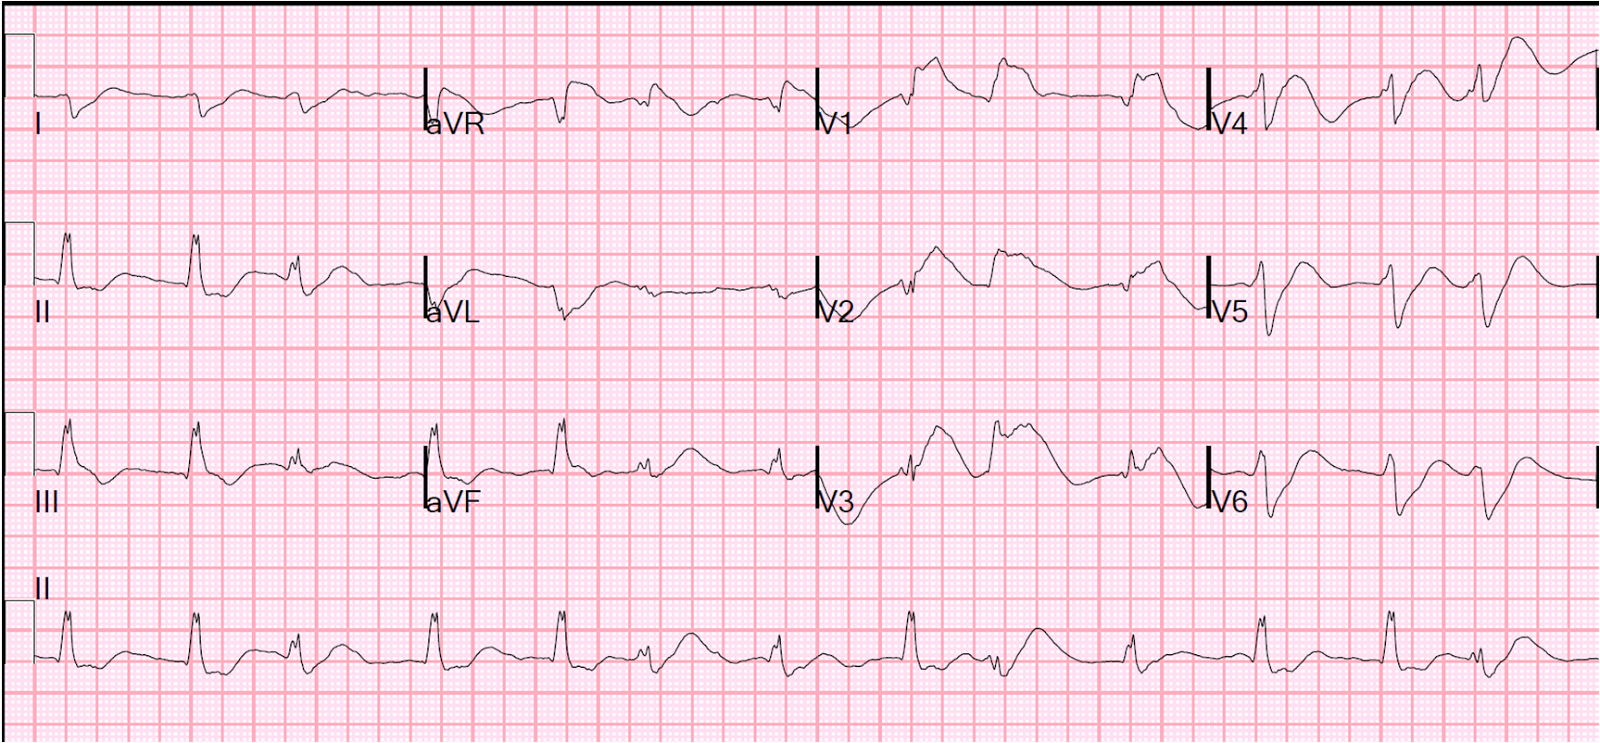 how to tell is an ecg is right